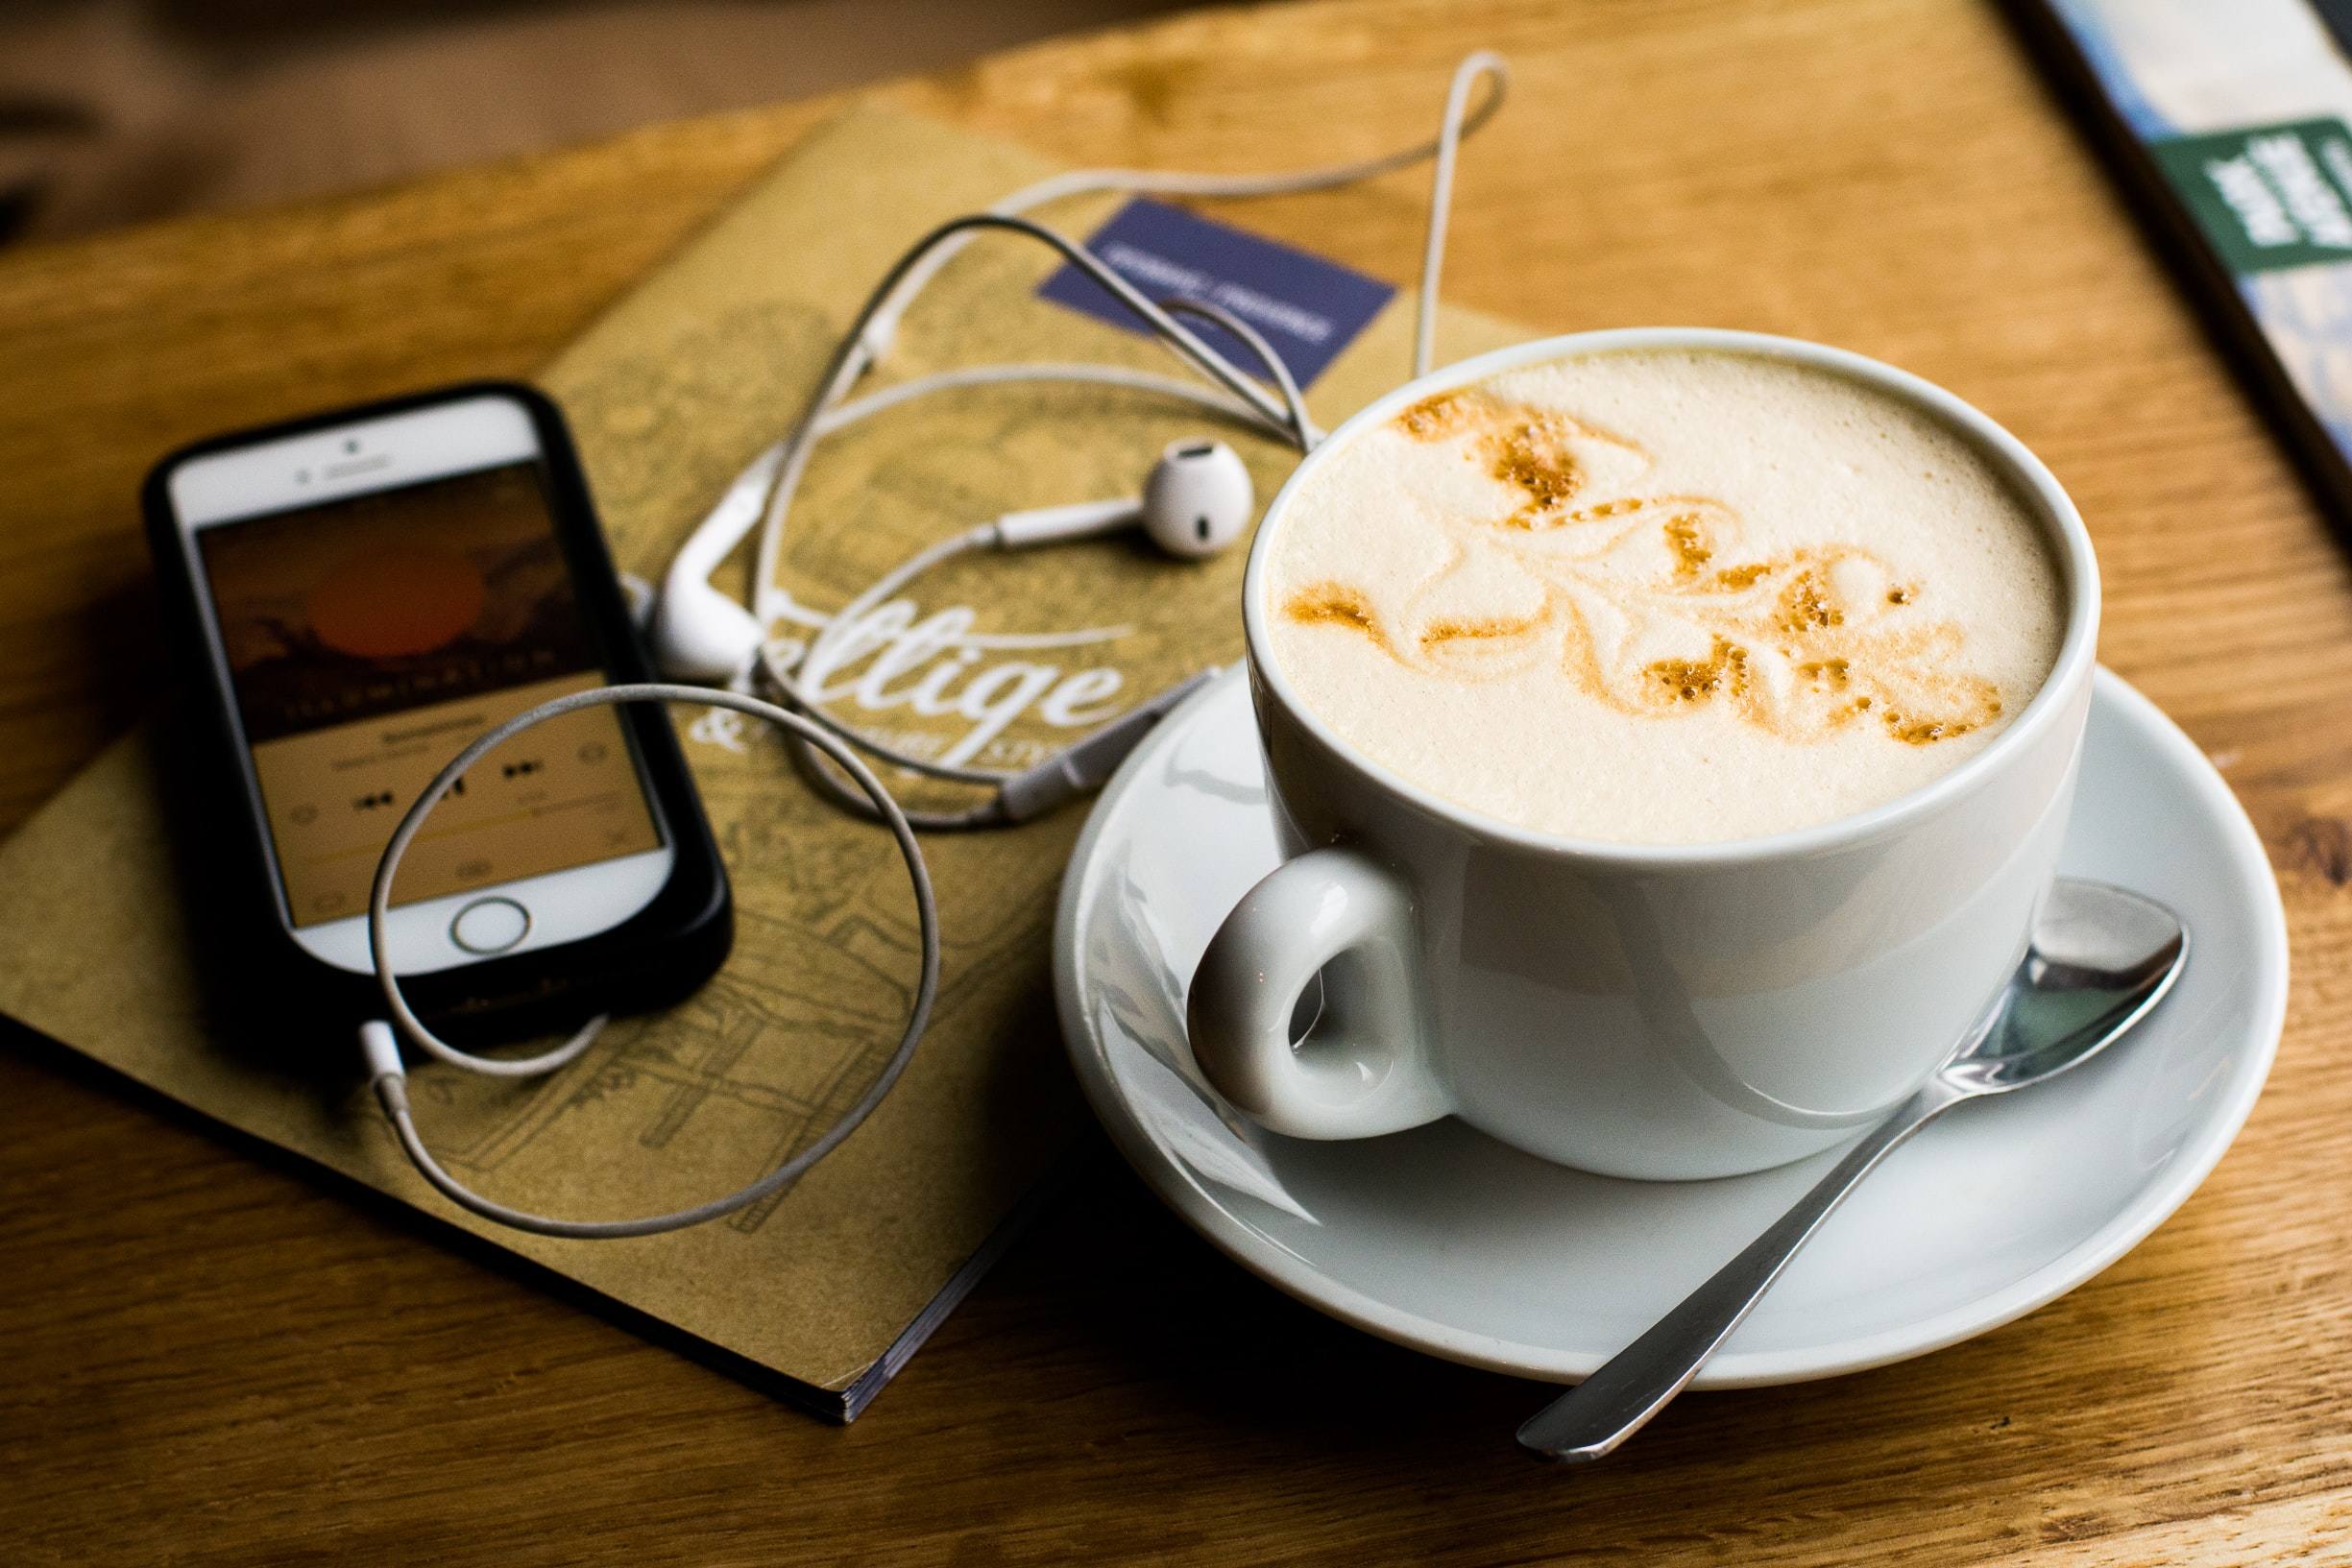 An espresso next to a phone and headphones on a table.